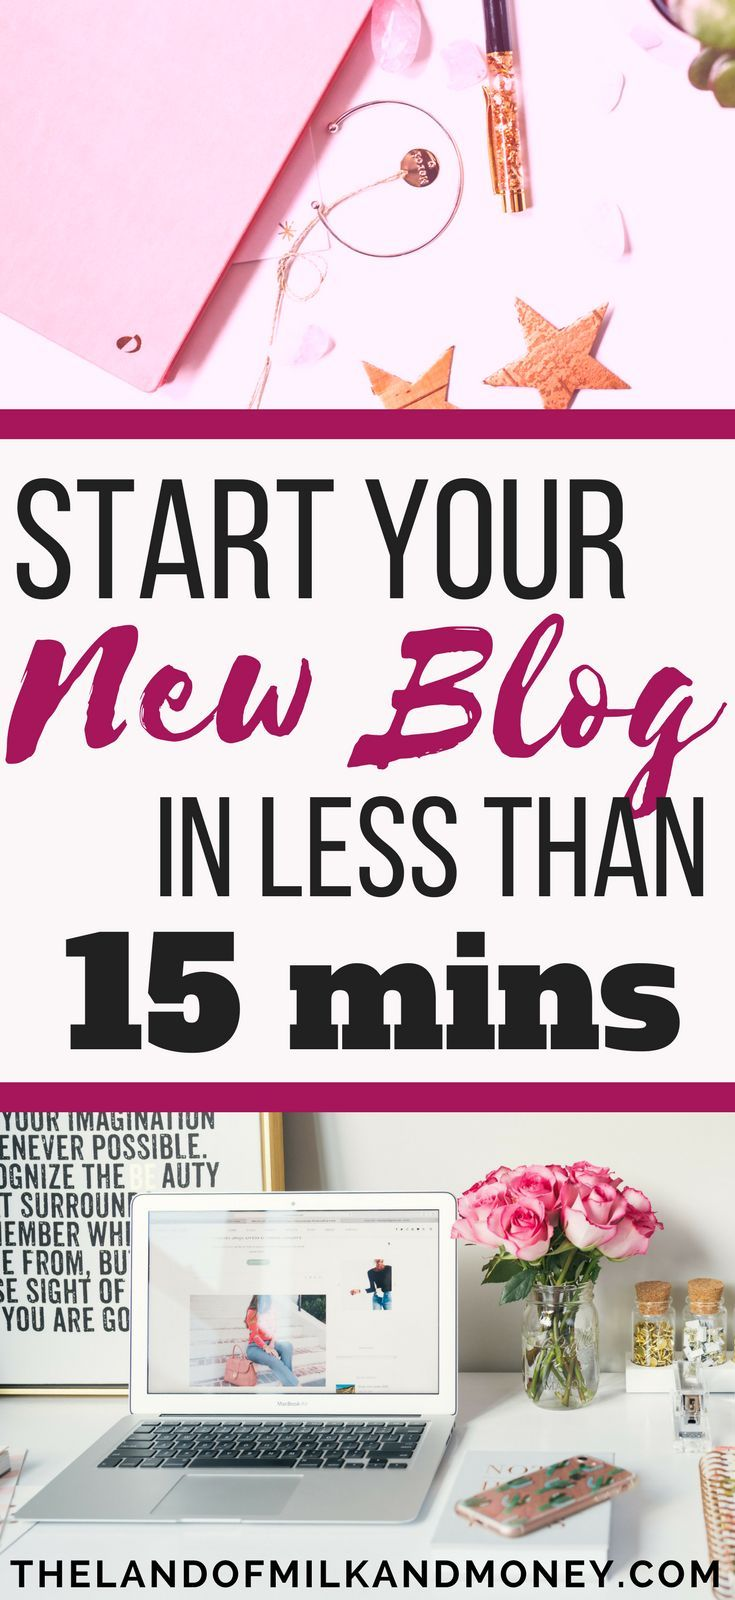 This guide makes it SO EASY for beginners to start a blog on WordPress! I never knew it was this quick - and cheap! This checklist is amazing, I can't wait to start blogging!